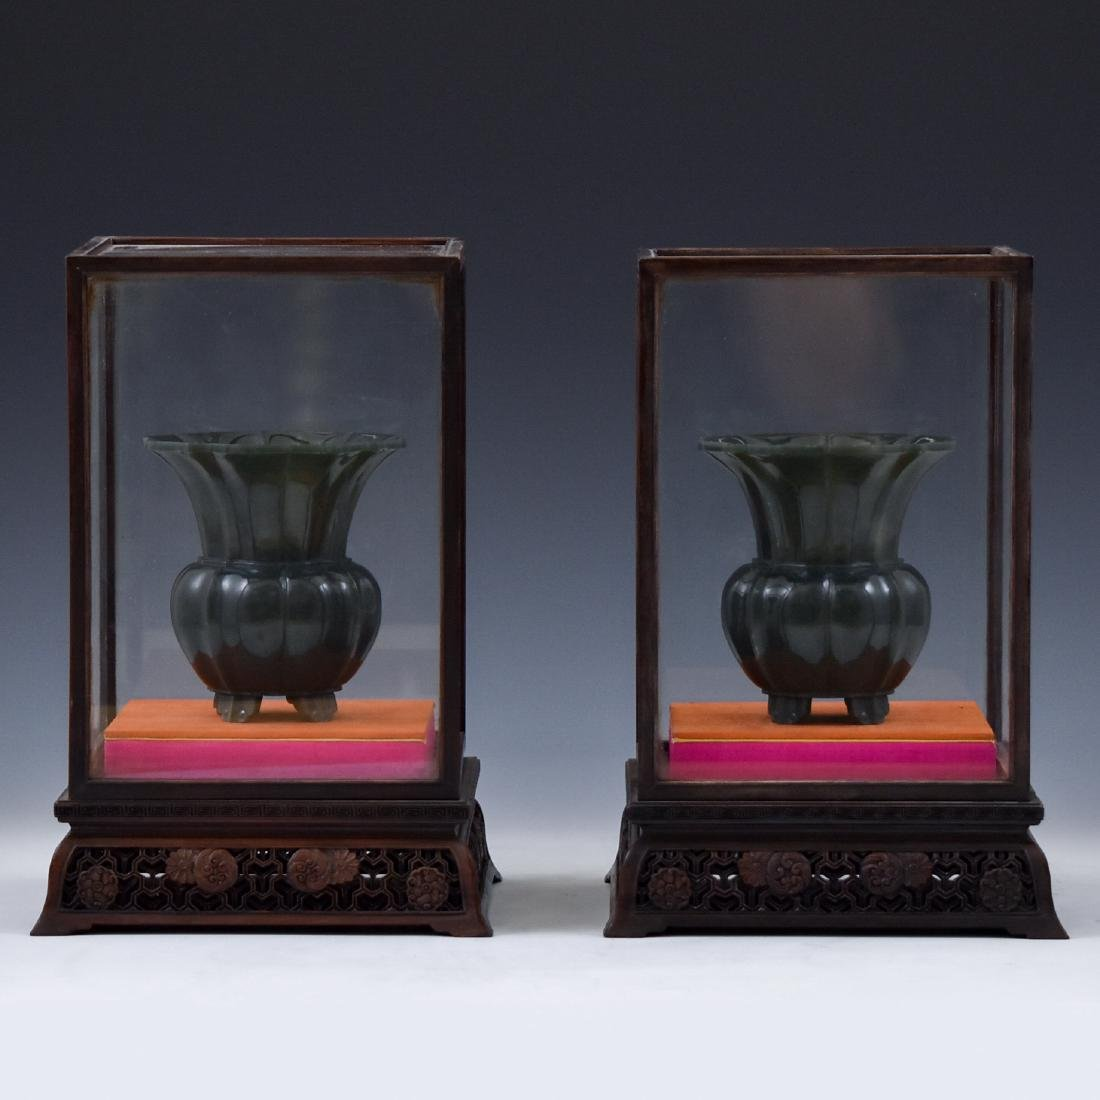 PAIR OF FLORI FORM GREEN JADE PLANT POTS IN GLASS BOX